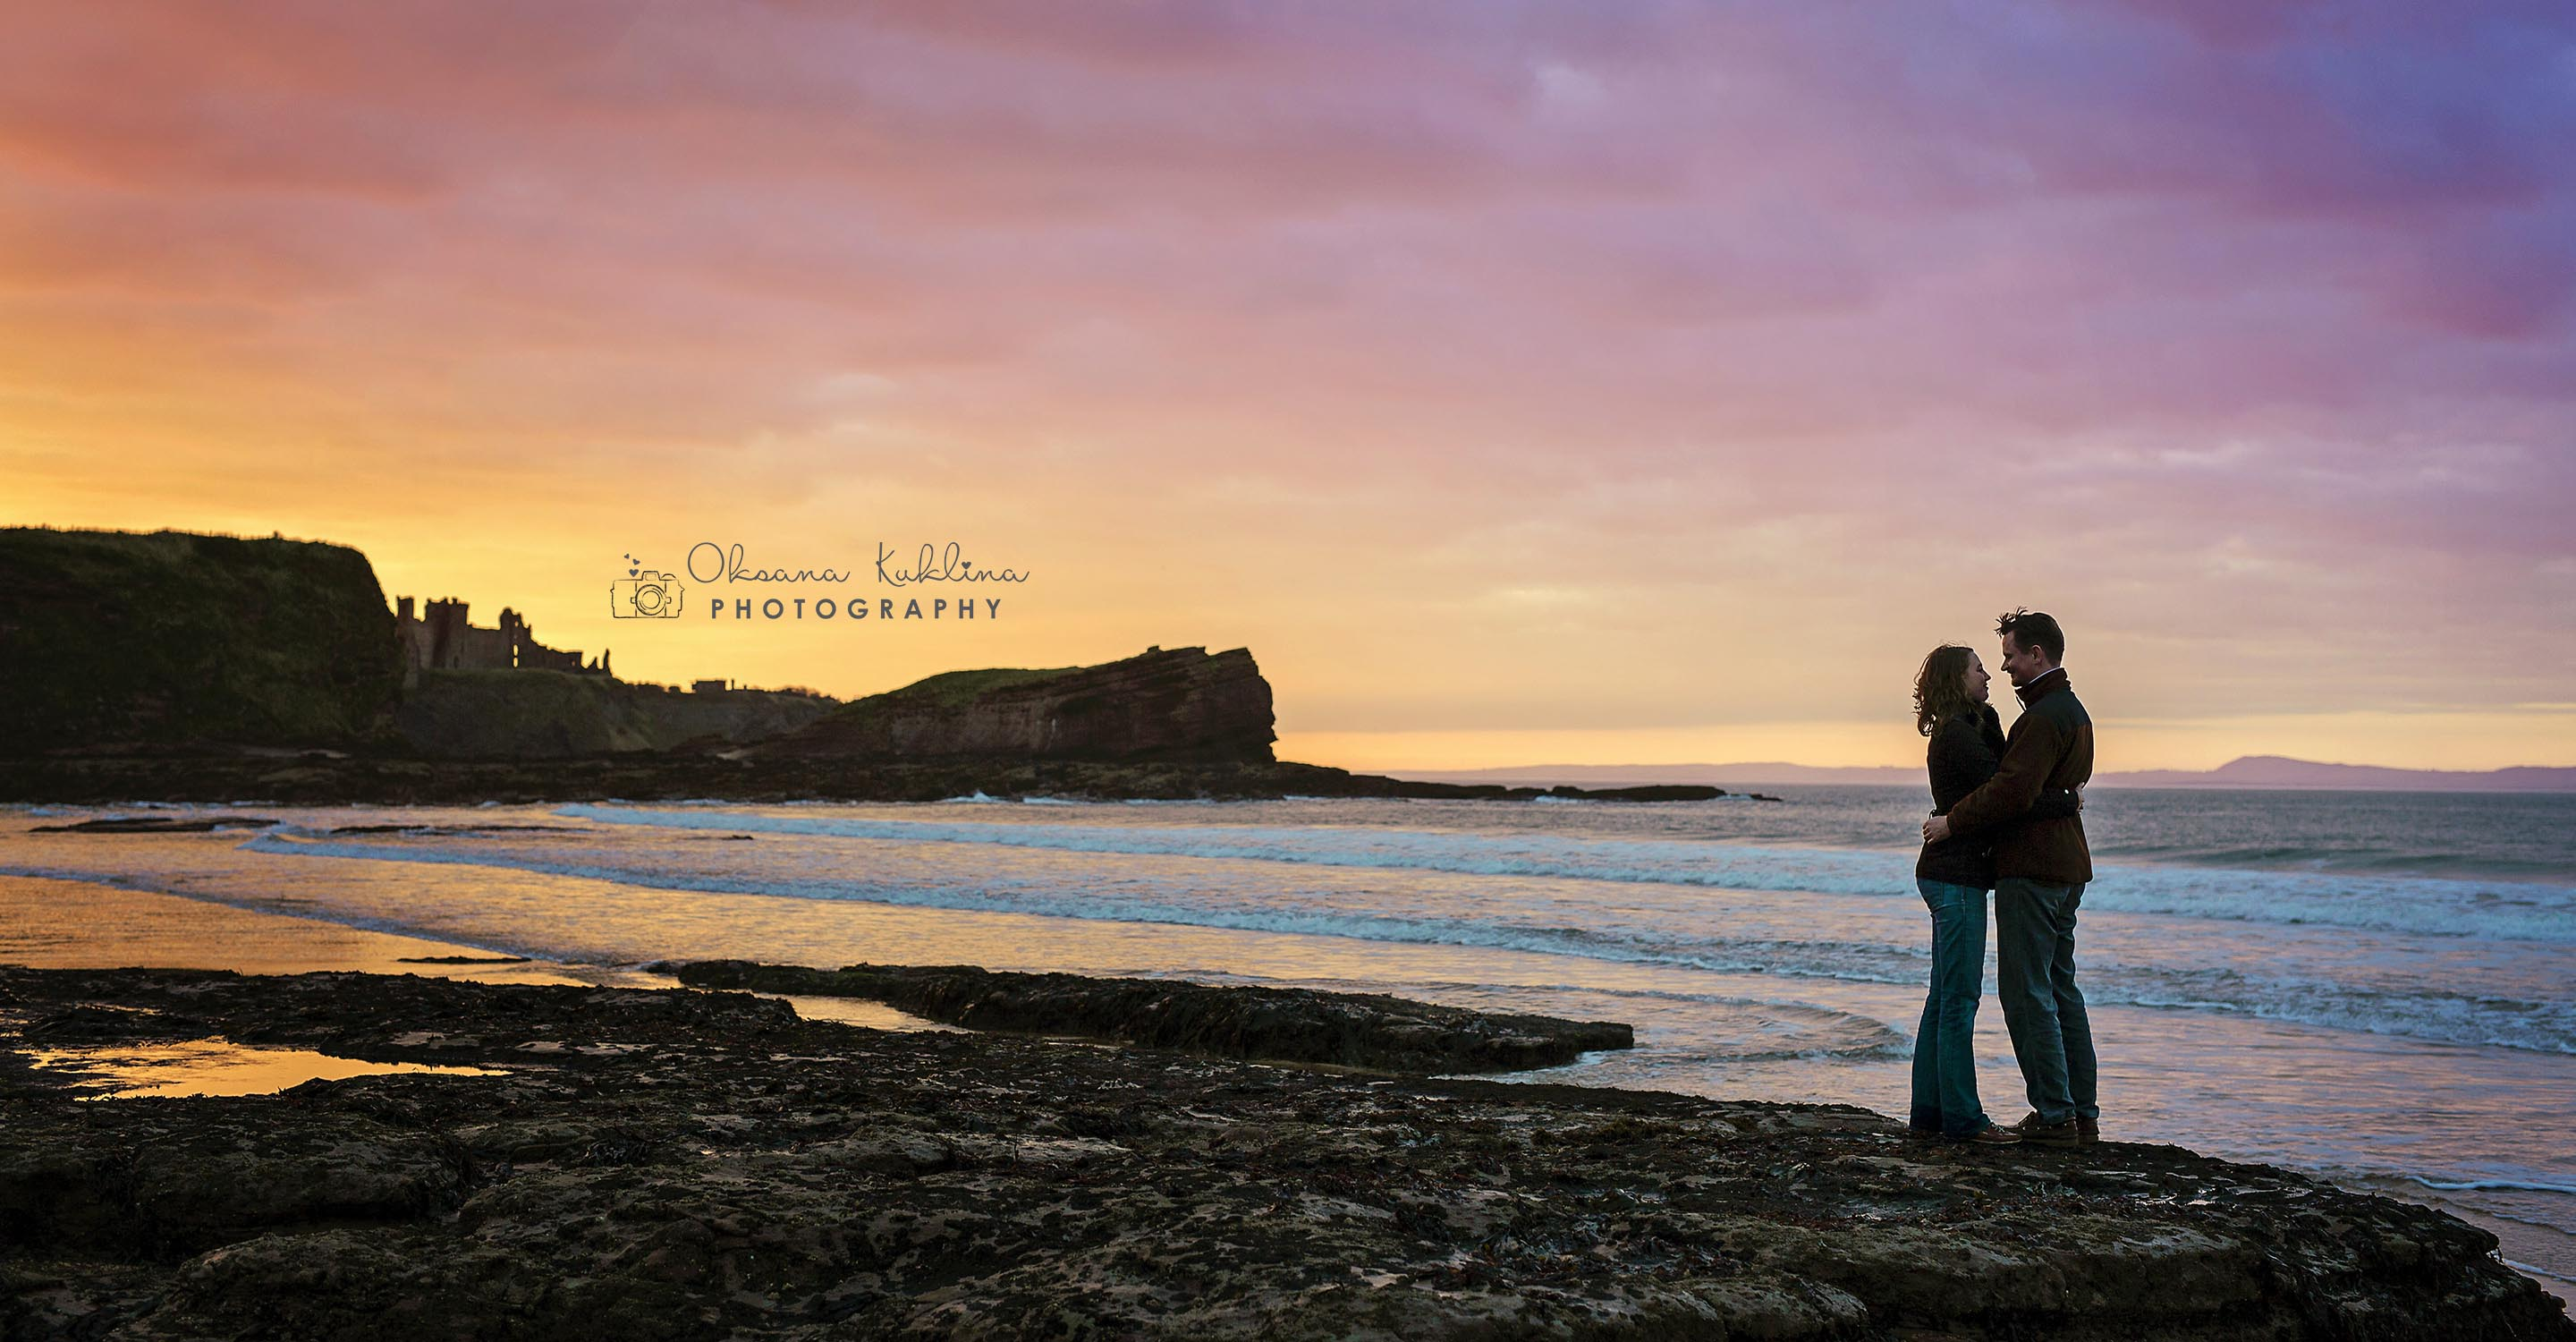 Scotland Engagement Photography - Engagement Photo Session